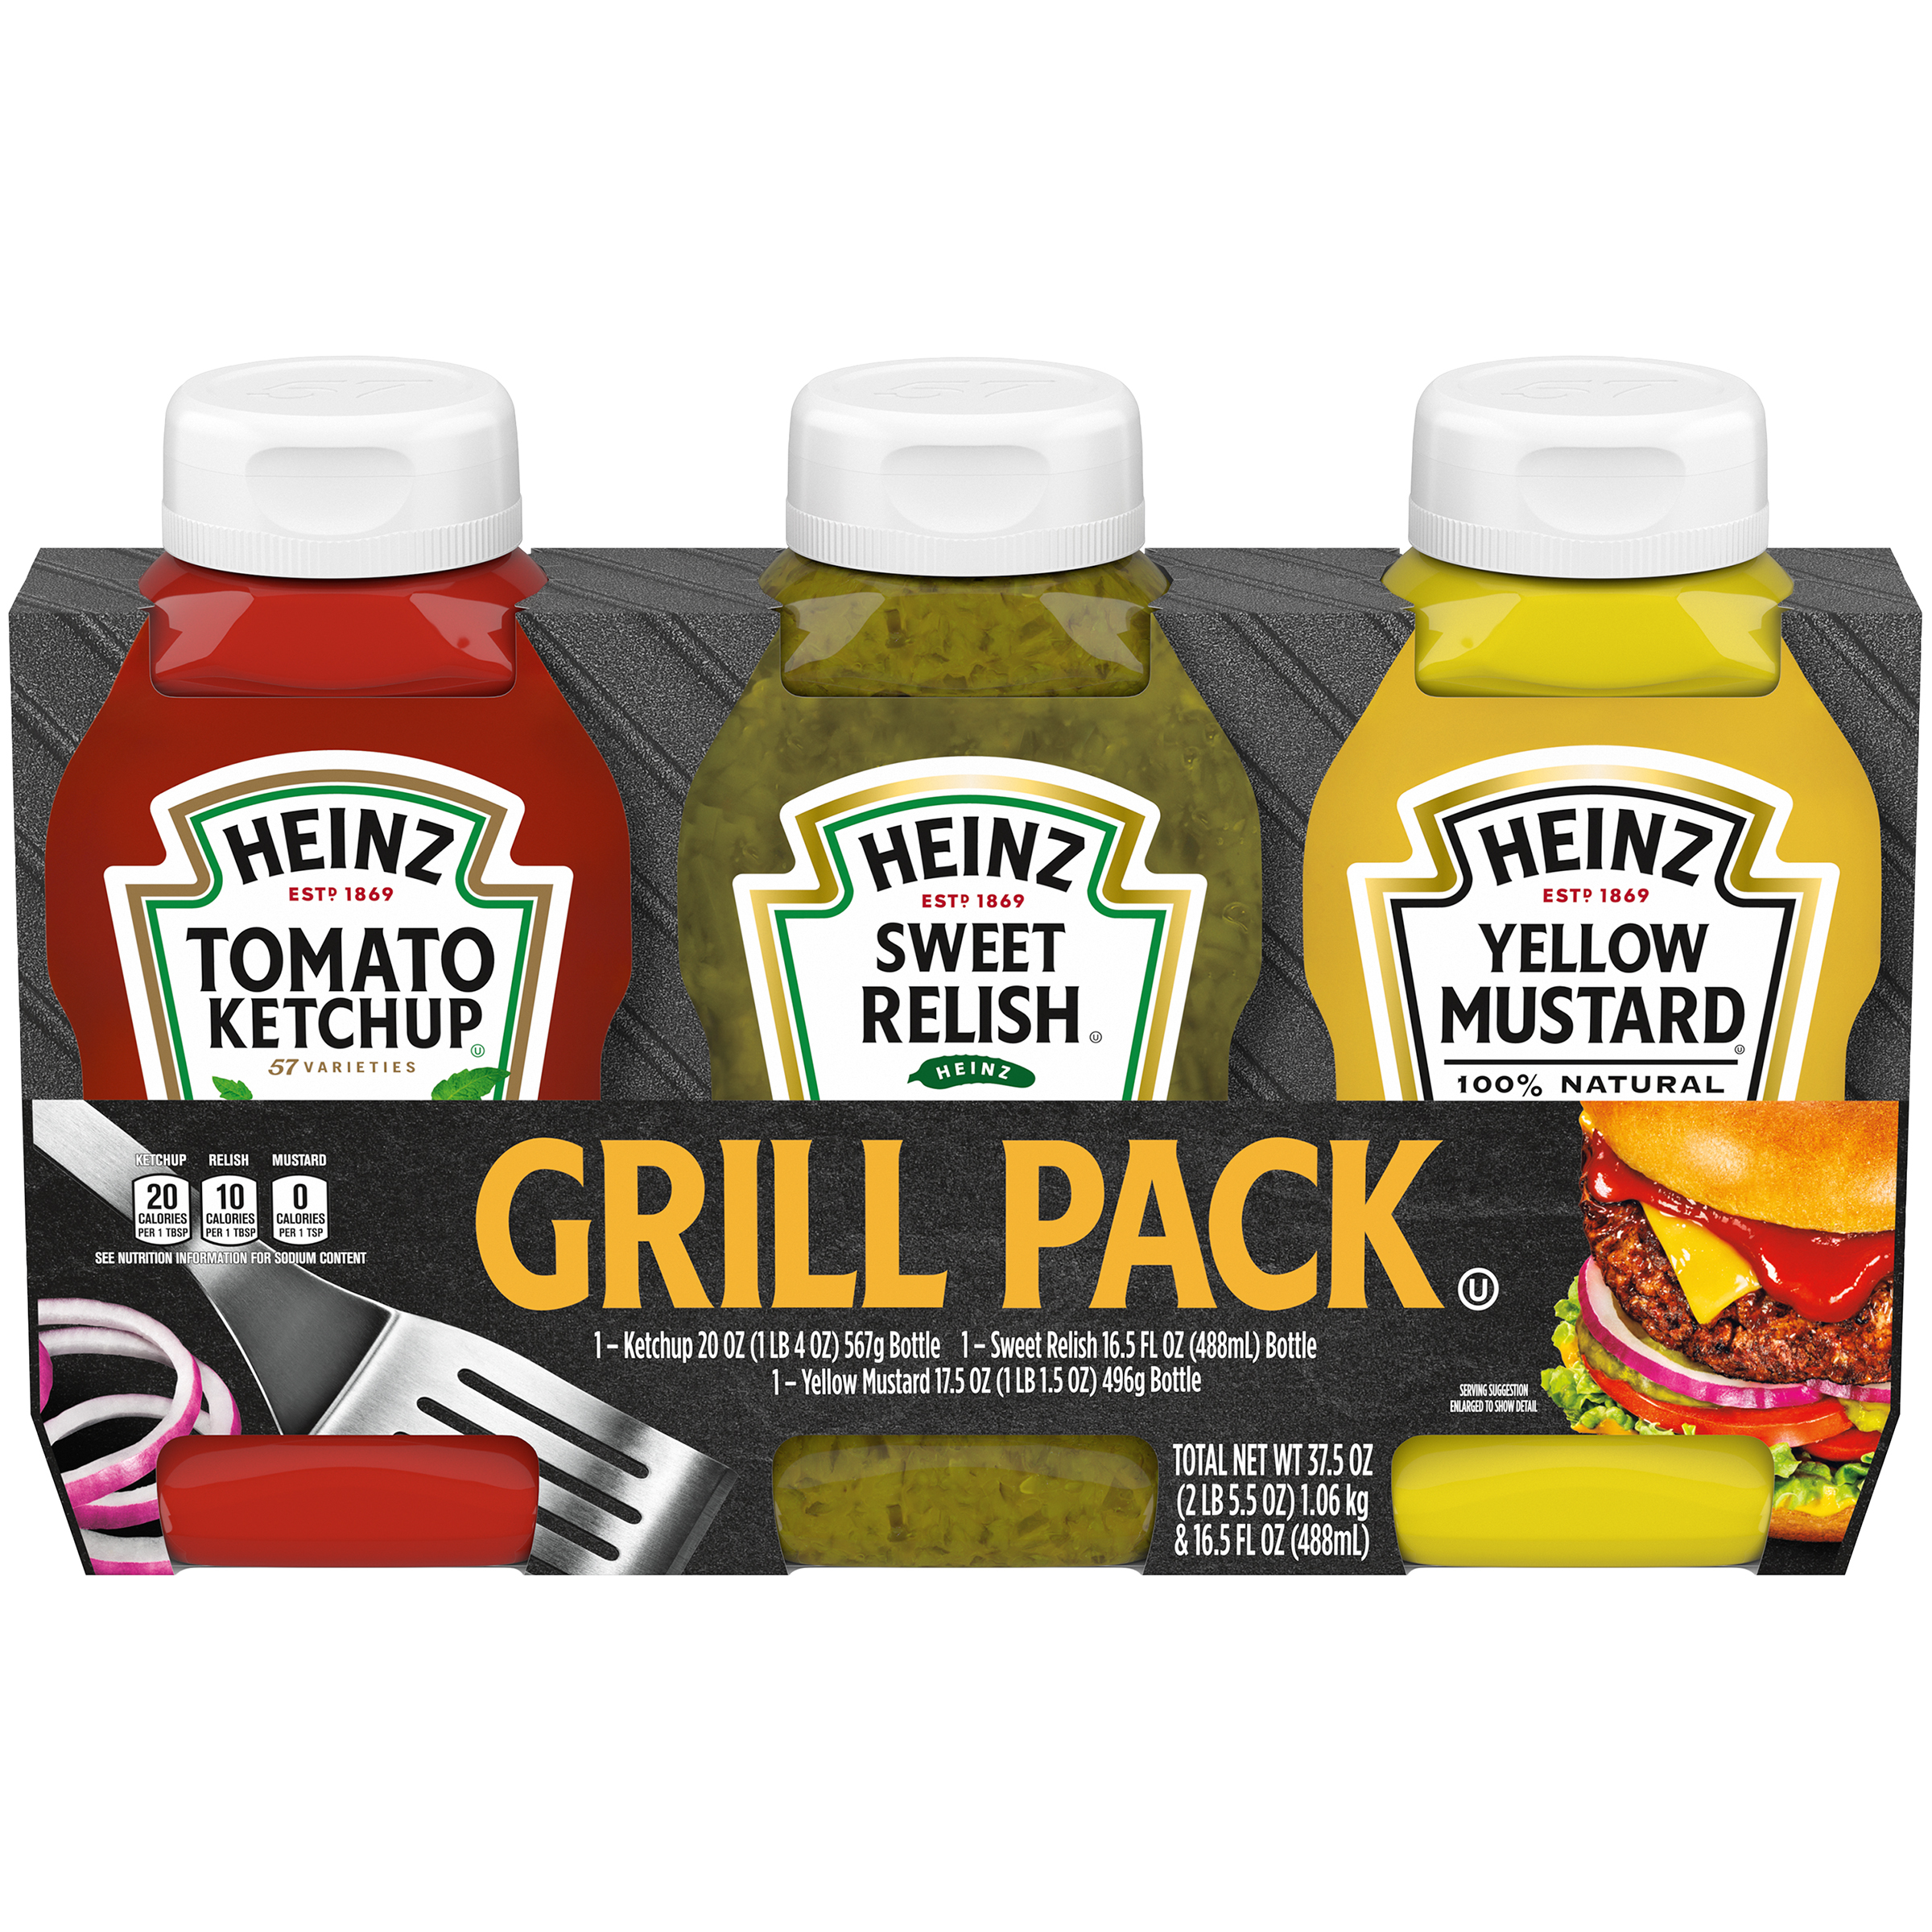 Heinz Tomato Ketchup/Sweet Relish/Yellow Mustard Picnic Pack 3 ct Bottles image